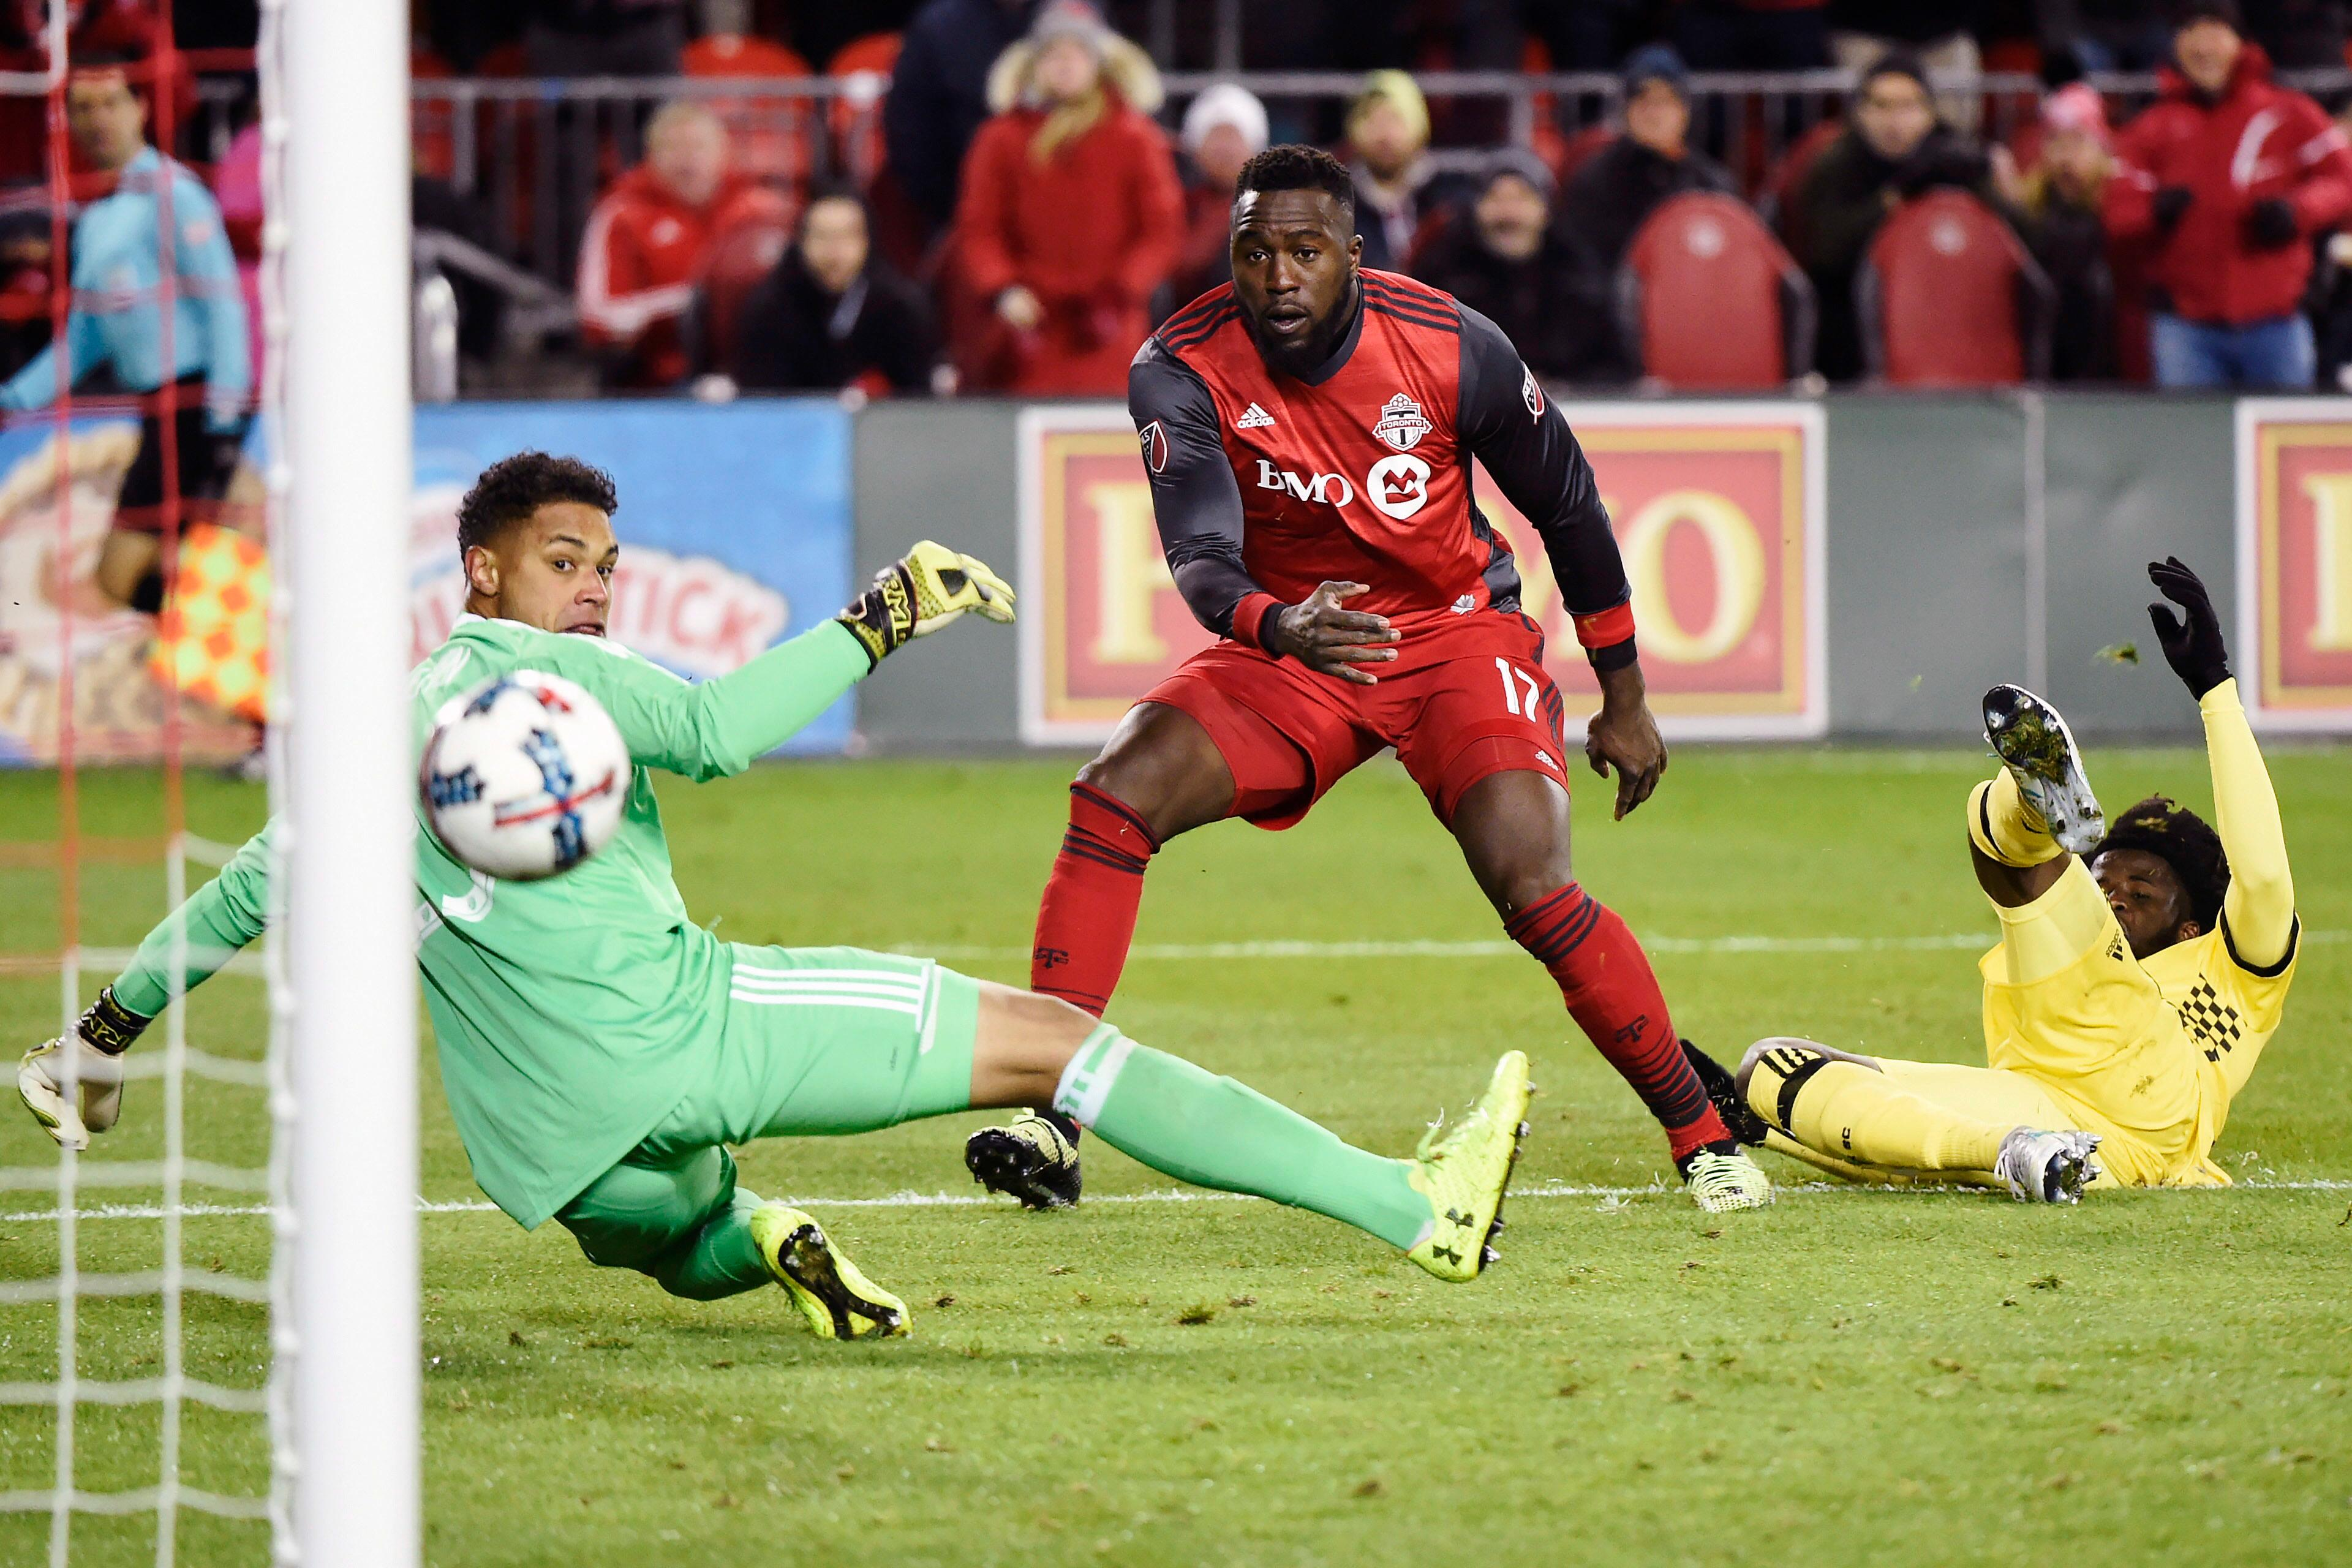 Toronto FC forward Jozy Altidore (17) scores on Columbus Crew goalkeeper Zack Steffen (23) as Crew defender Lalas Abubakar (17) looks on during the second half of an Eastern Conference MLS final playoff soccer game, Wednesday, Nov. 29, 2017 in Toronto. (Nathan Denette/The Canadian Press via AP)